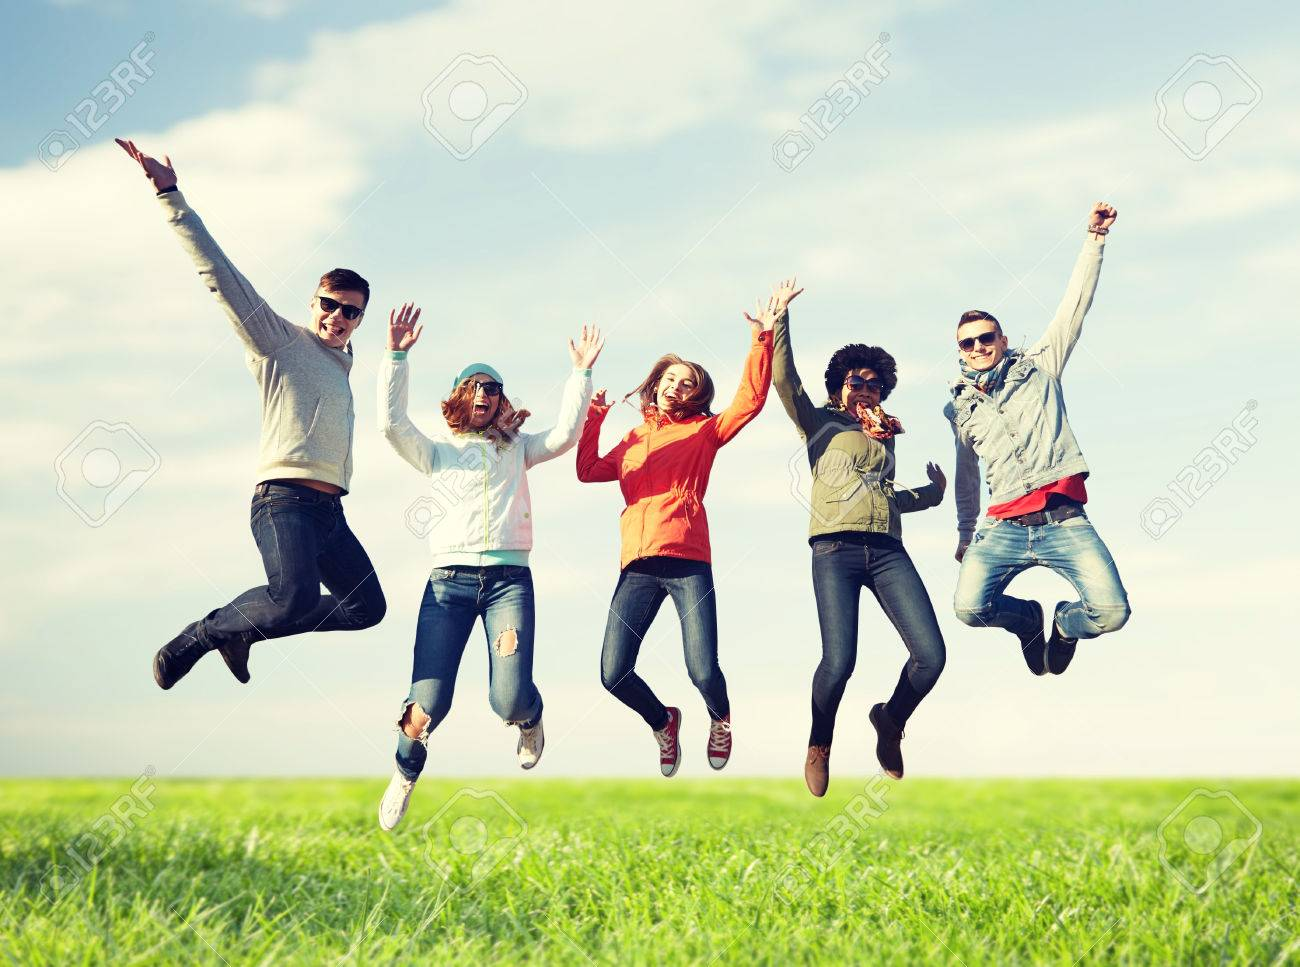 people, freedom, happiness and teenage concept - group of happy friends in sunglasses jumping high over blue sky and grass background - 61136560